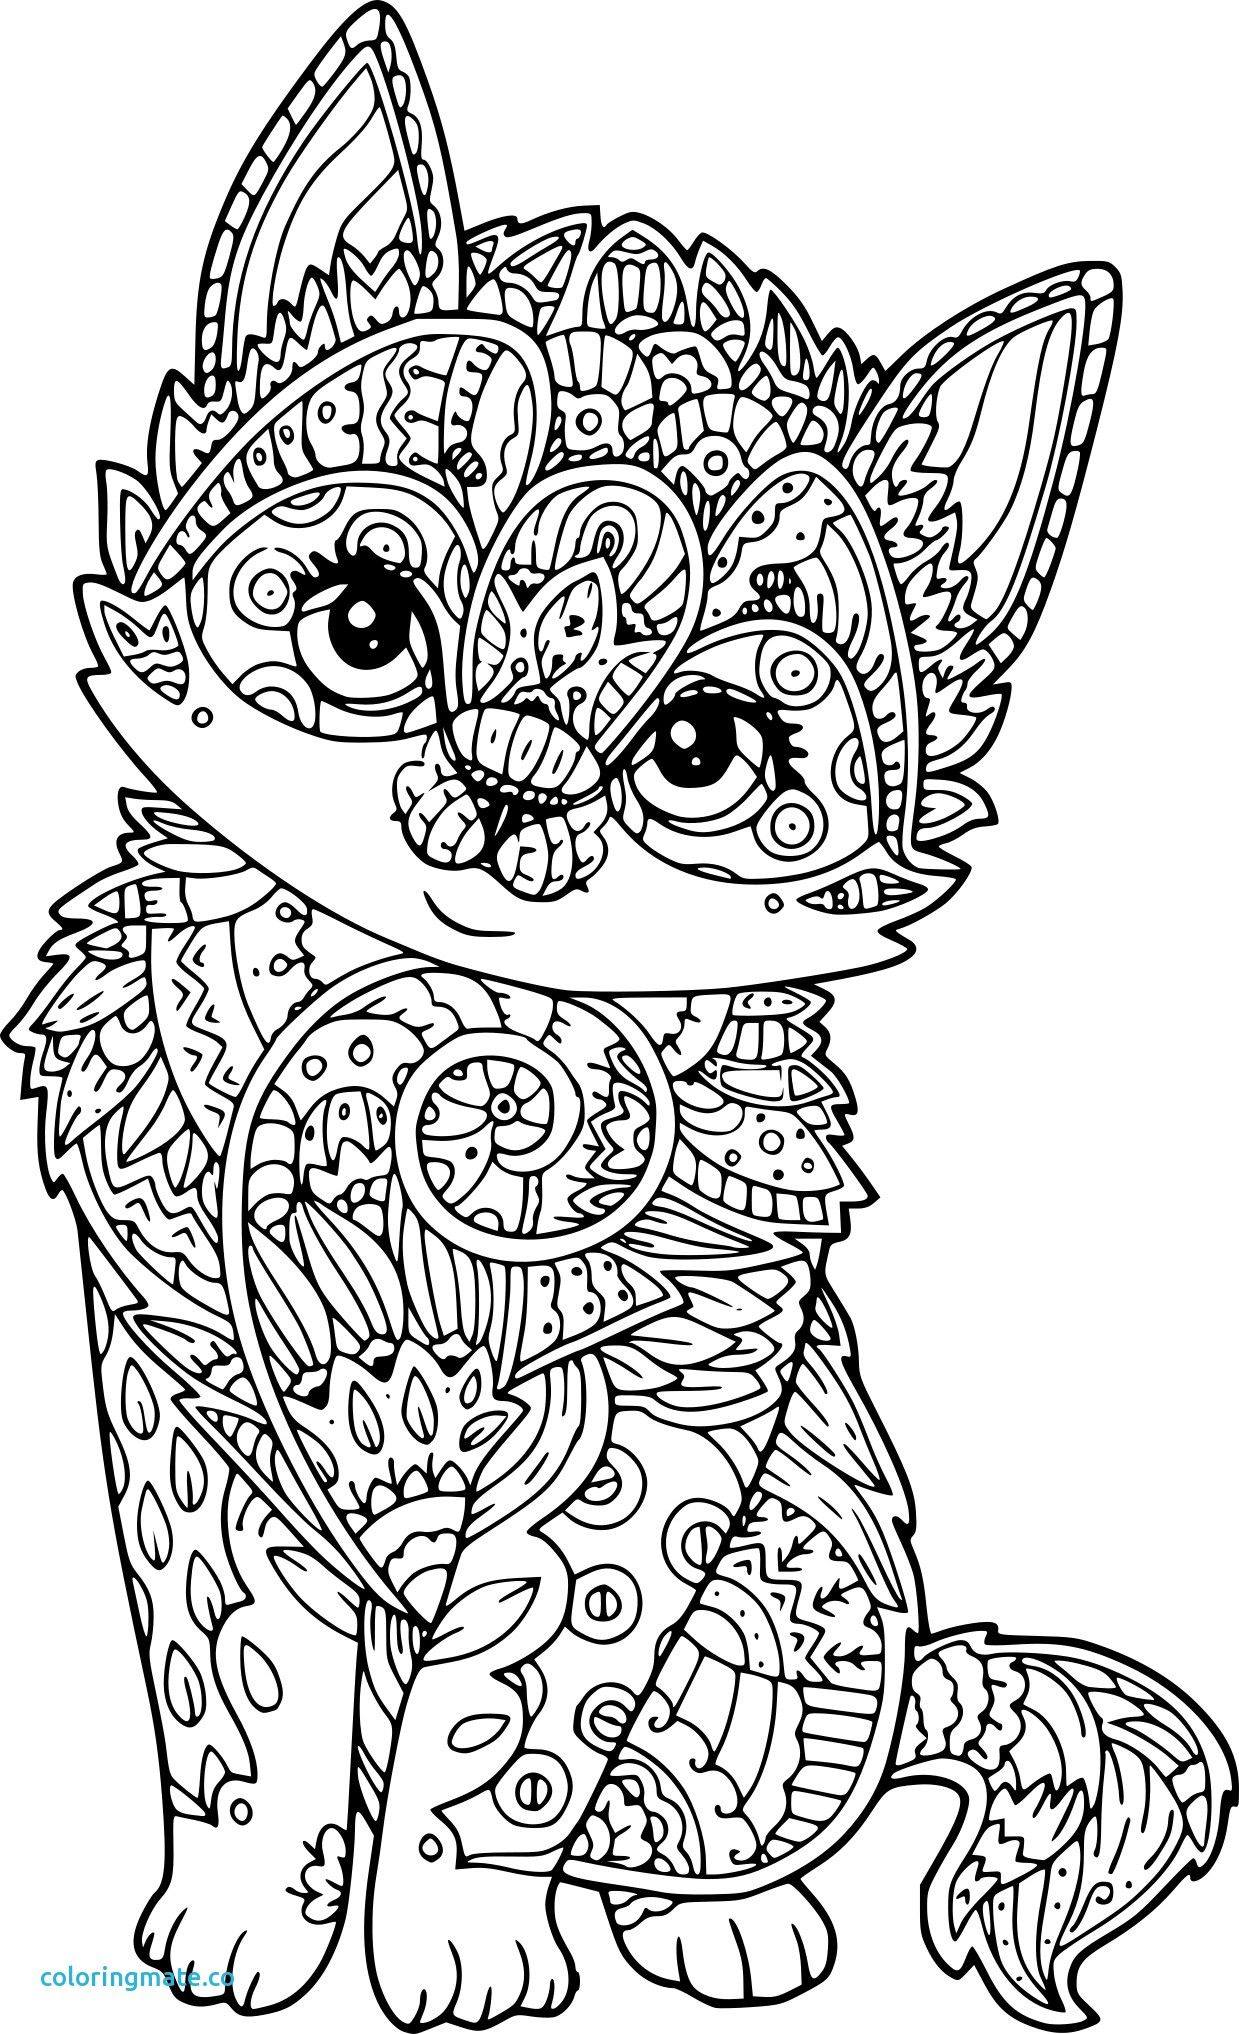 Coloriage mandala chat papillon fresh coloriage chat - Chat a colorier ...